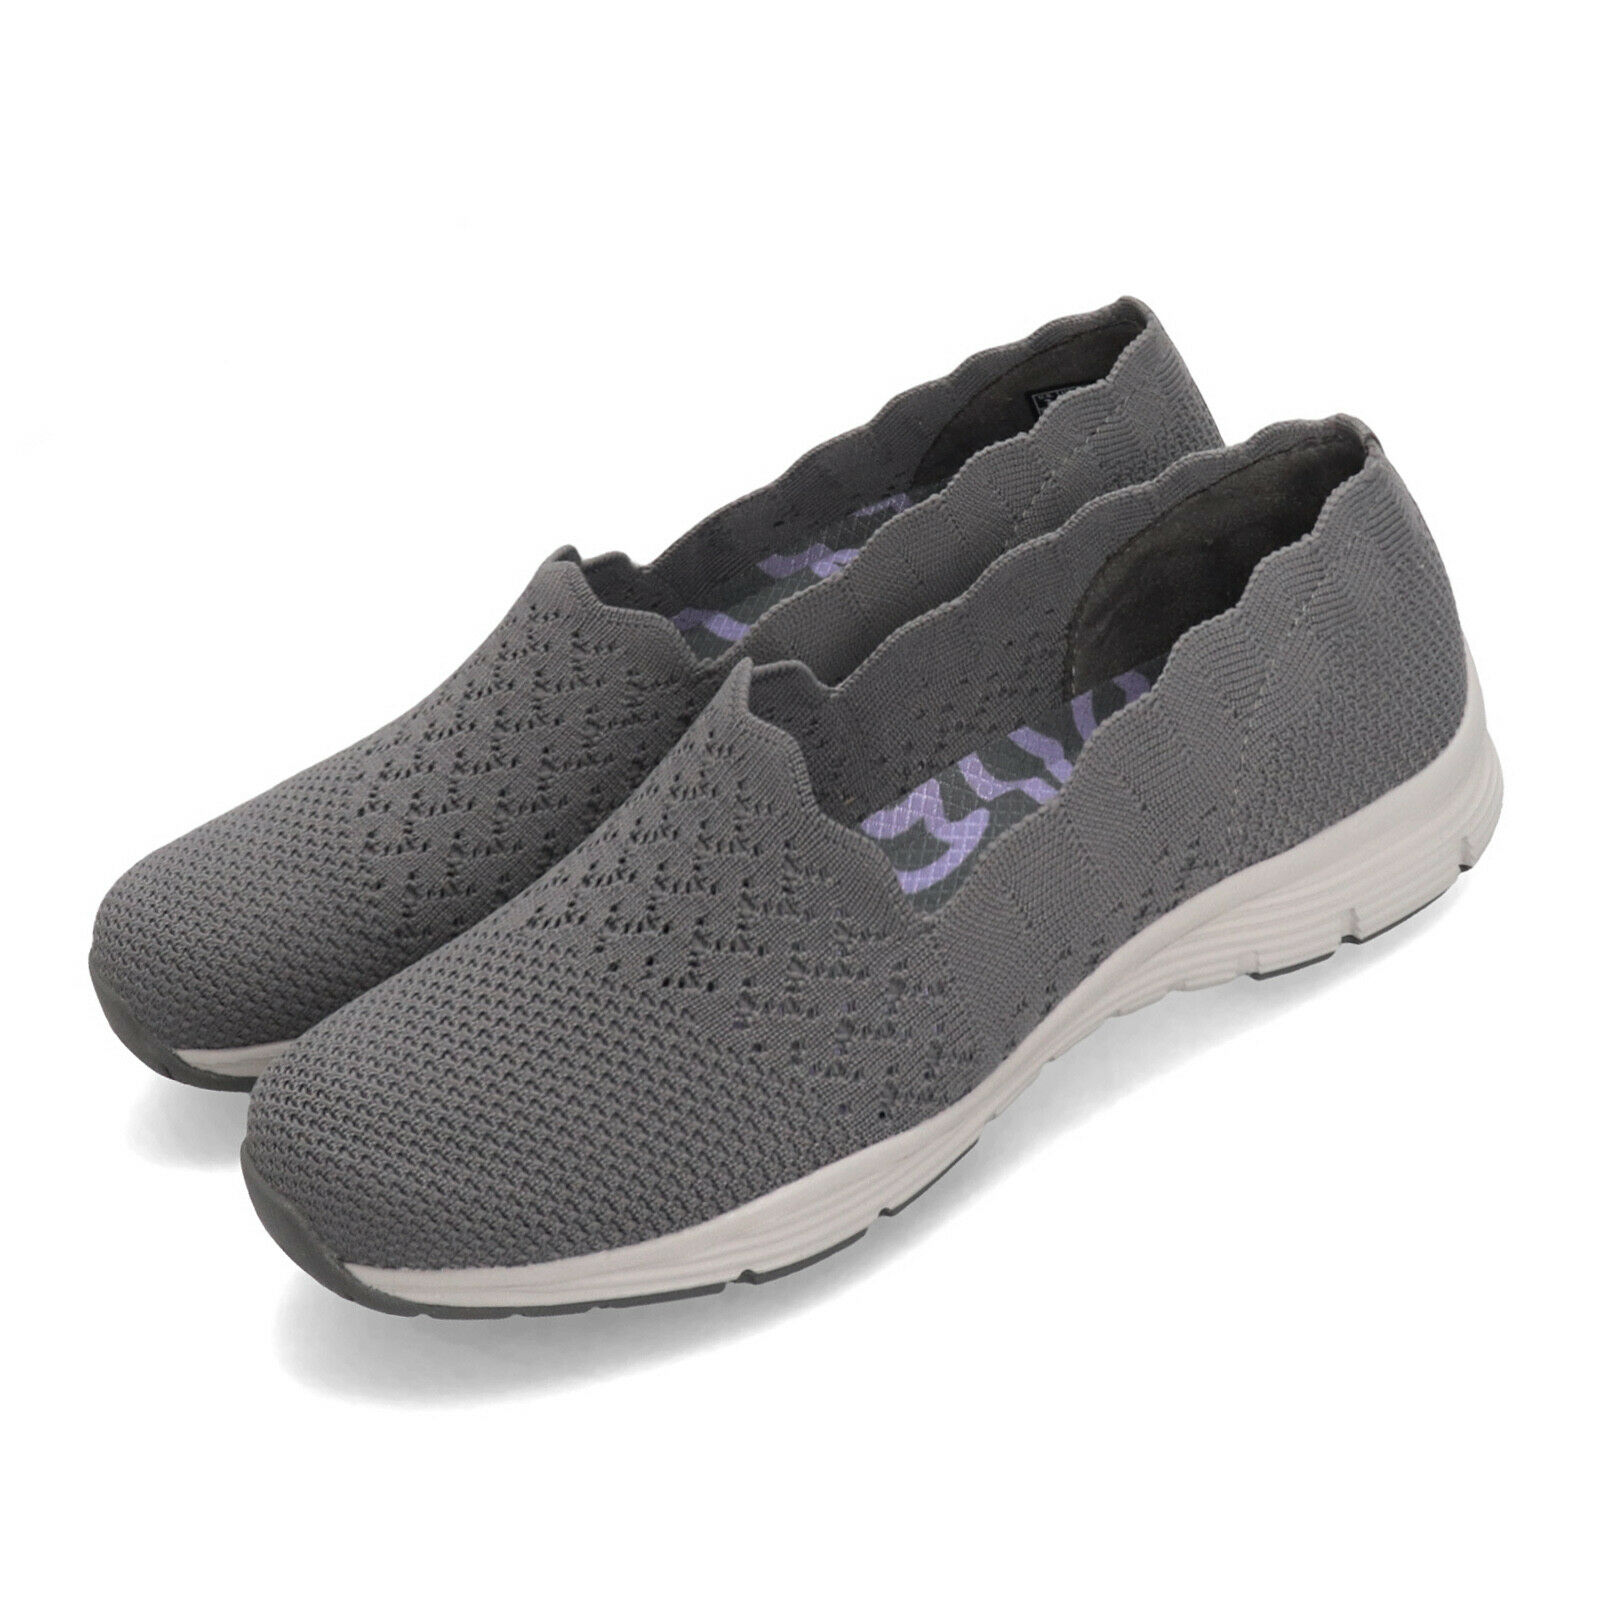 Skechers Seager-Stat Grey White Women Slip On Casual shoes Loafers 49481-GRY